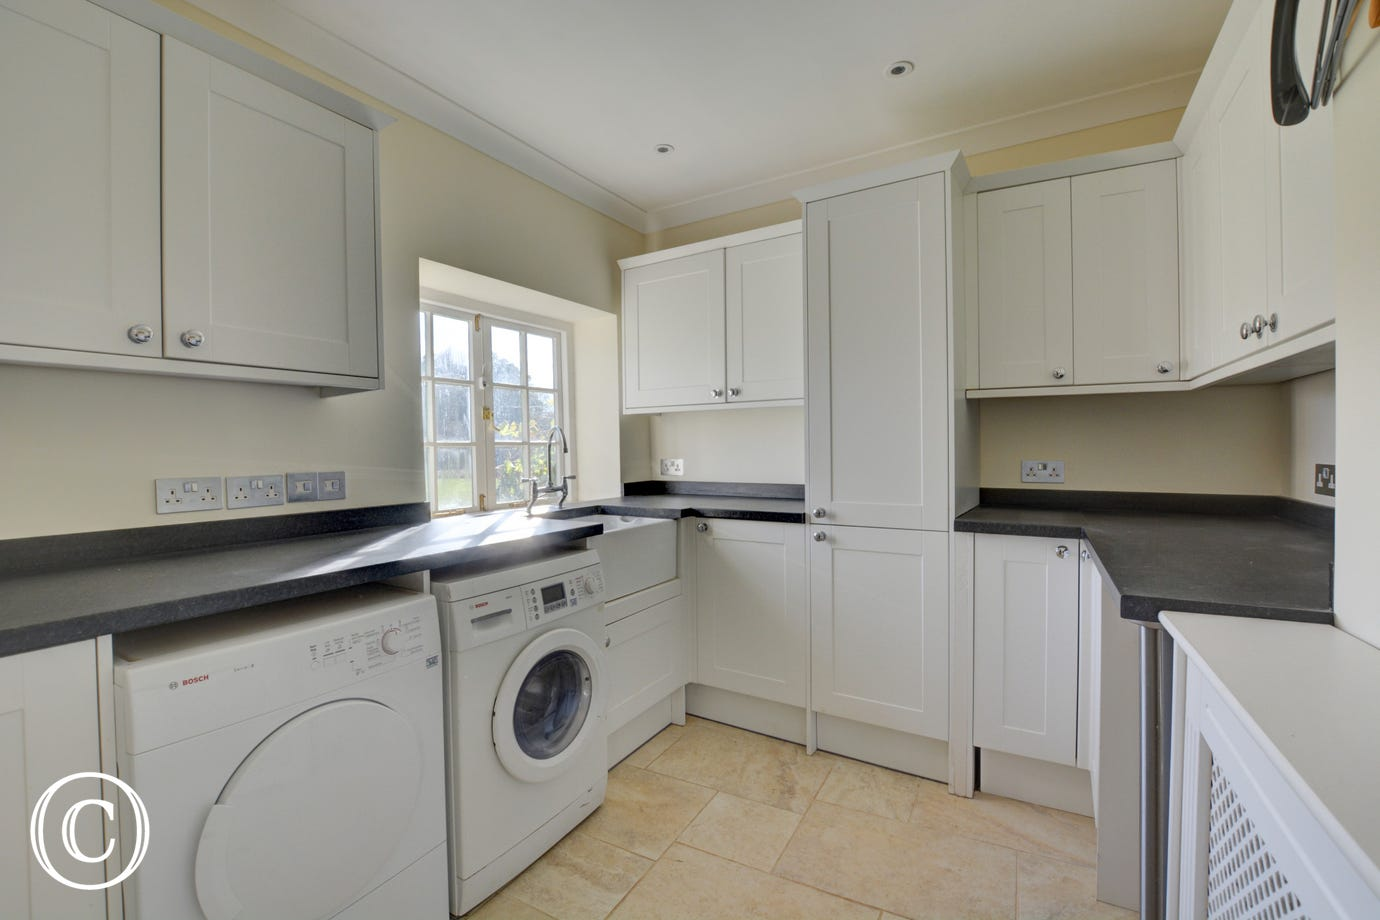 Essential utility room with washing machine, tumble dryer and fridge/freezer